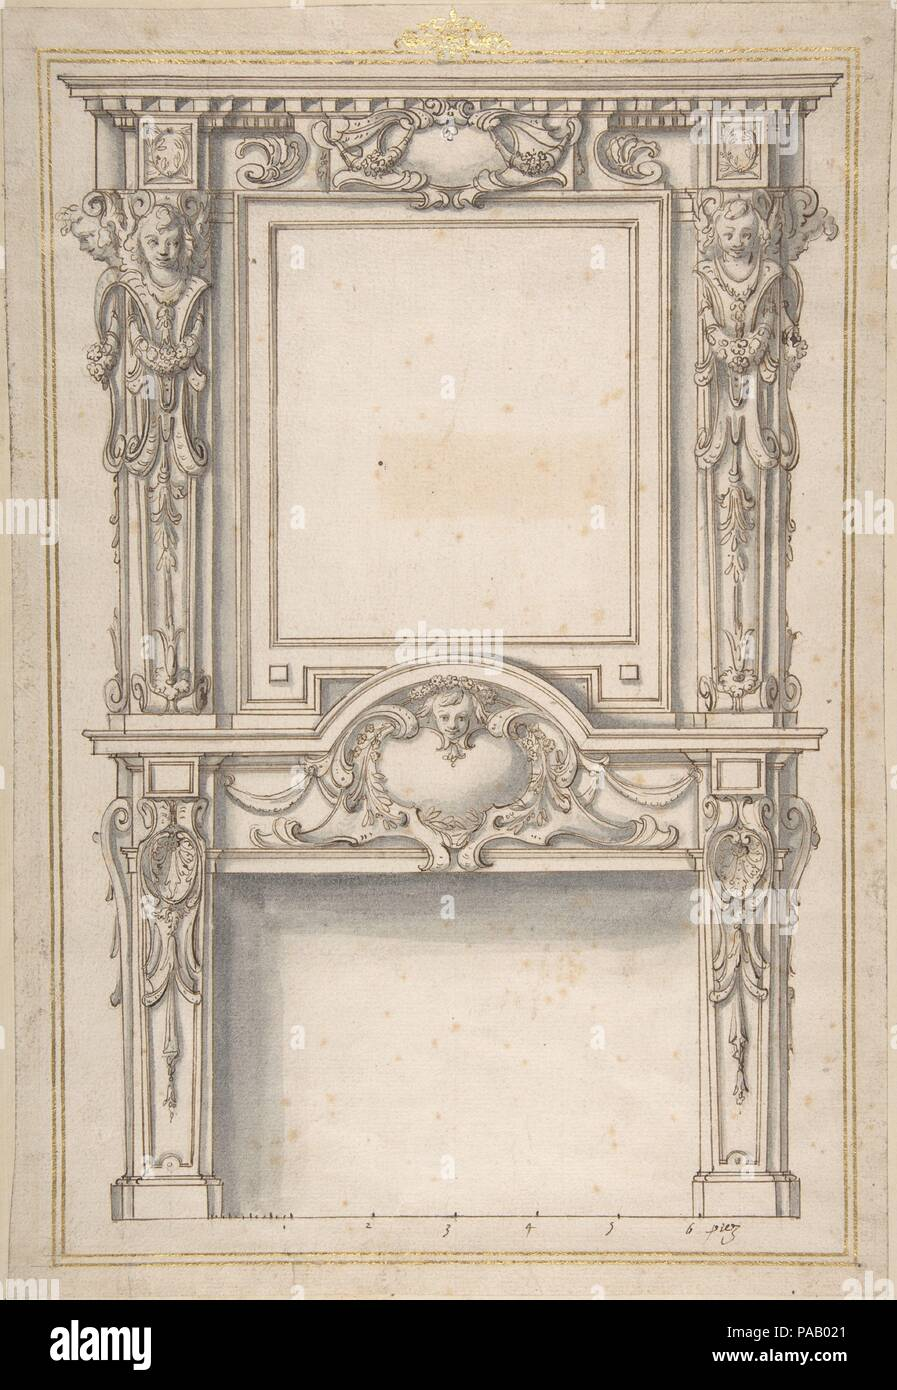 Design for a Fireplace. Artist: Anonymous, French, 17th century; After Jean Barbet (French, 1605-1654). Dimensions: 13 7/8 x 9 3/8 in.  (35.2 x 23.8 cm). Former Attribution: Formerly attributed to Salomon de Brosse; Formerly attributed to François Derand (French, Vic-sur-Seille ca. 1590-1640 Agde). Date: 1633 or after.  This drawing reproduces a fireplace published in a print series by Melchior II Tavernier (French, Antwerp 1595-1665 Paris) in 1633. Eight years earlier, Tavernier had hired a young artist called Jean Barbet to record some of the latest novelties in interior design from in and a - Stock Image